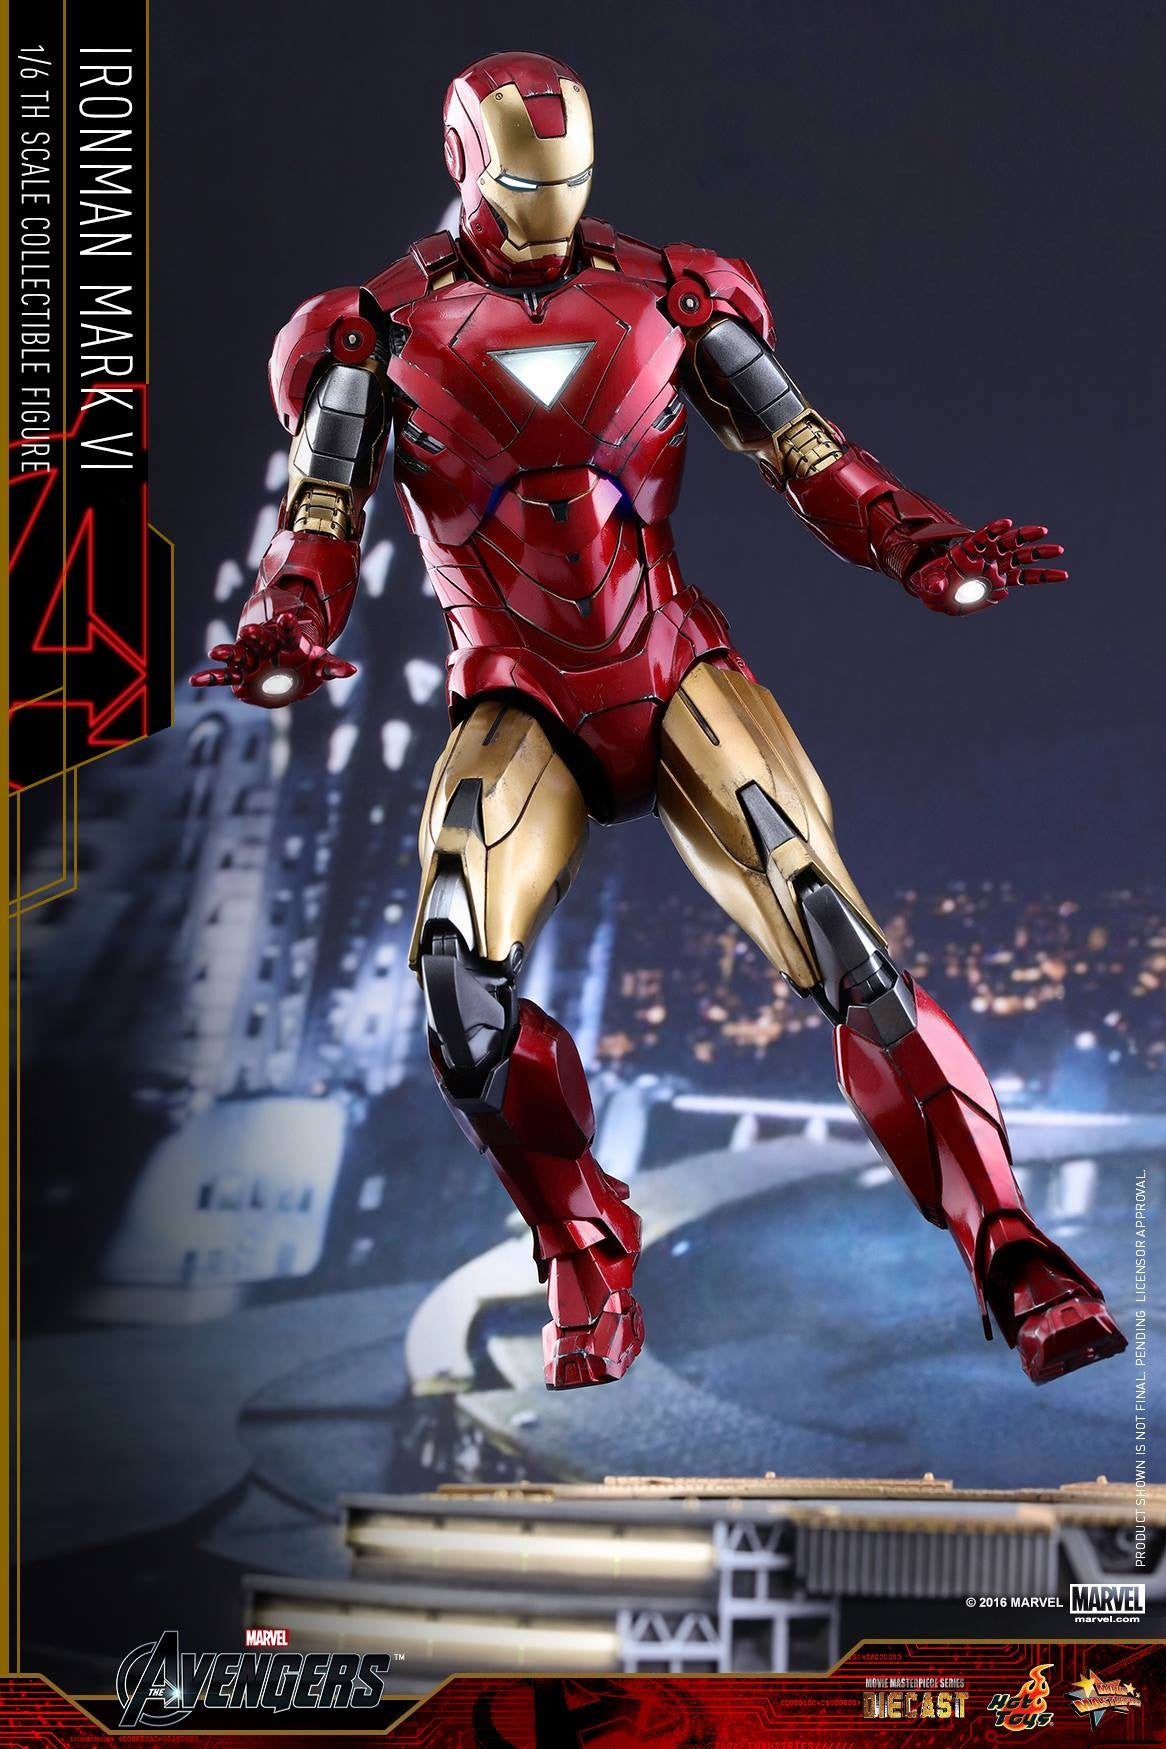 Hot Toys - MMS378D17 - The Avengers - Iron Man Mark VI (DIECAST) (Normal Edition) - Marvelous Toys - 11